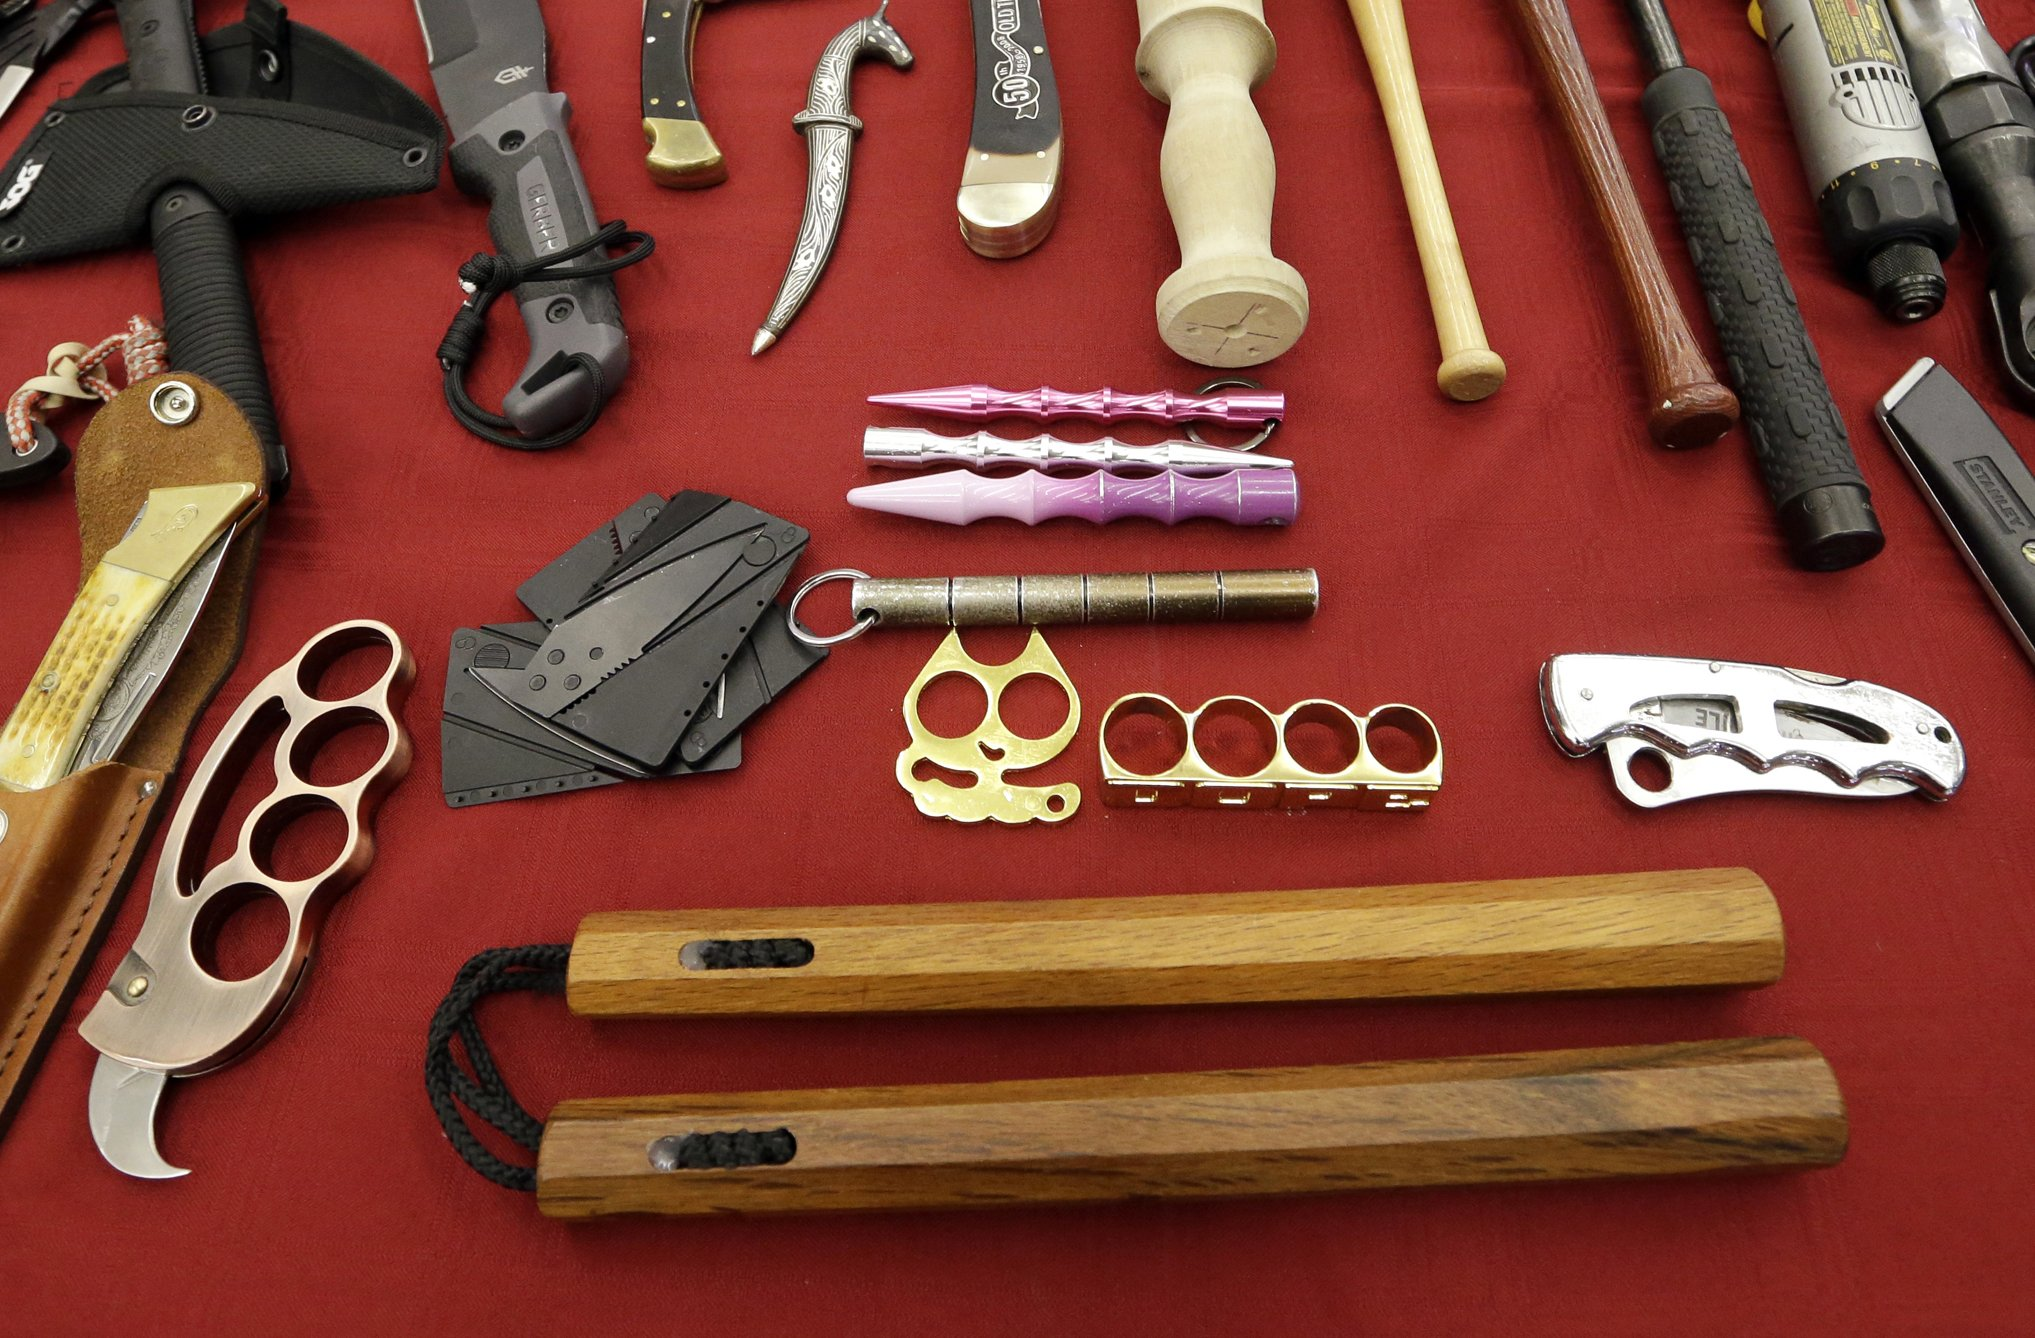 Federal Court Says Ny Ban On Nunchucks Unconstitutional